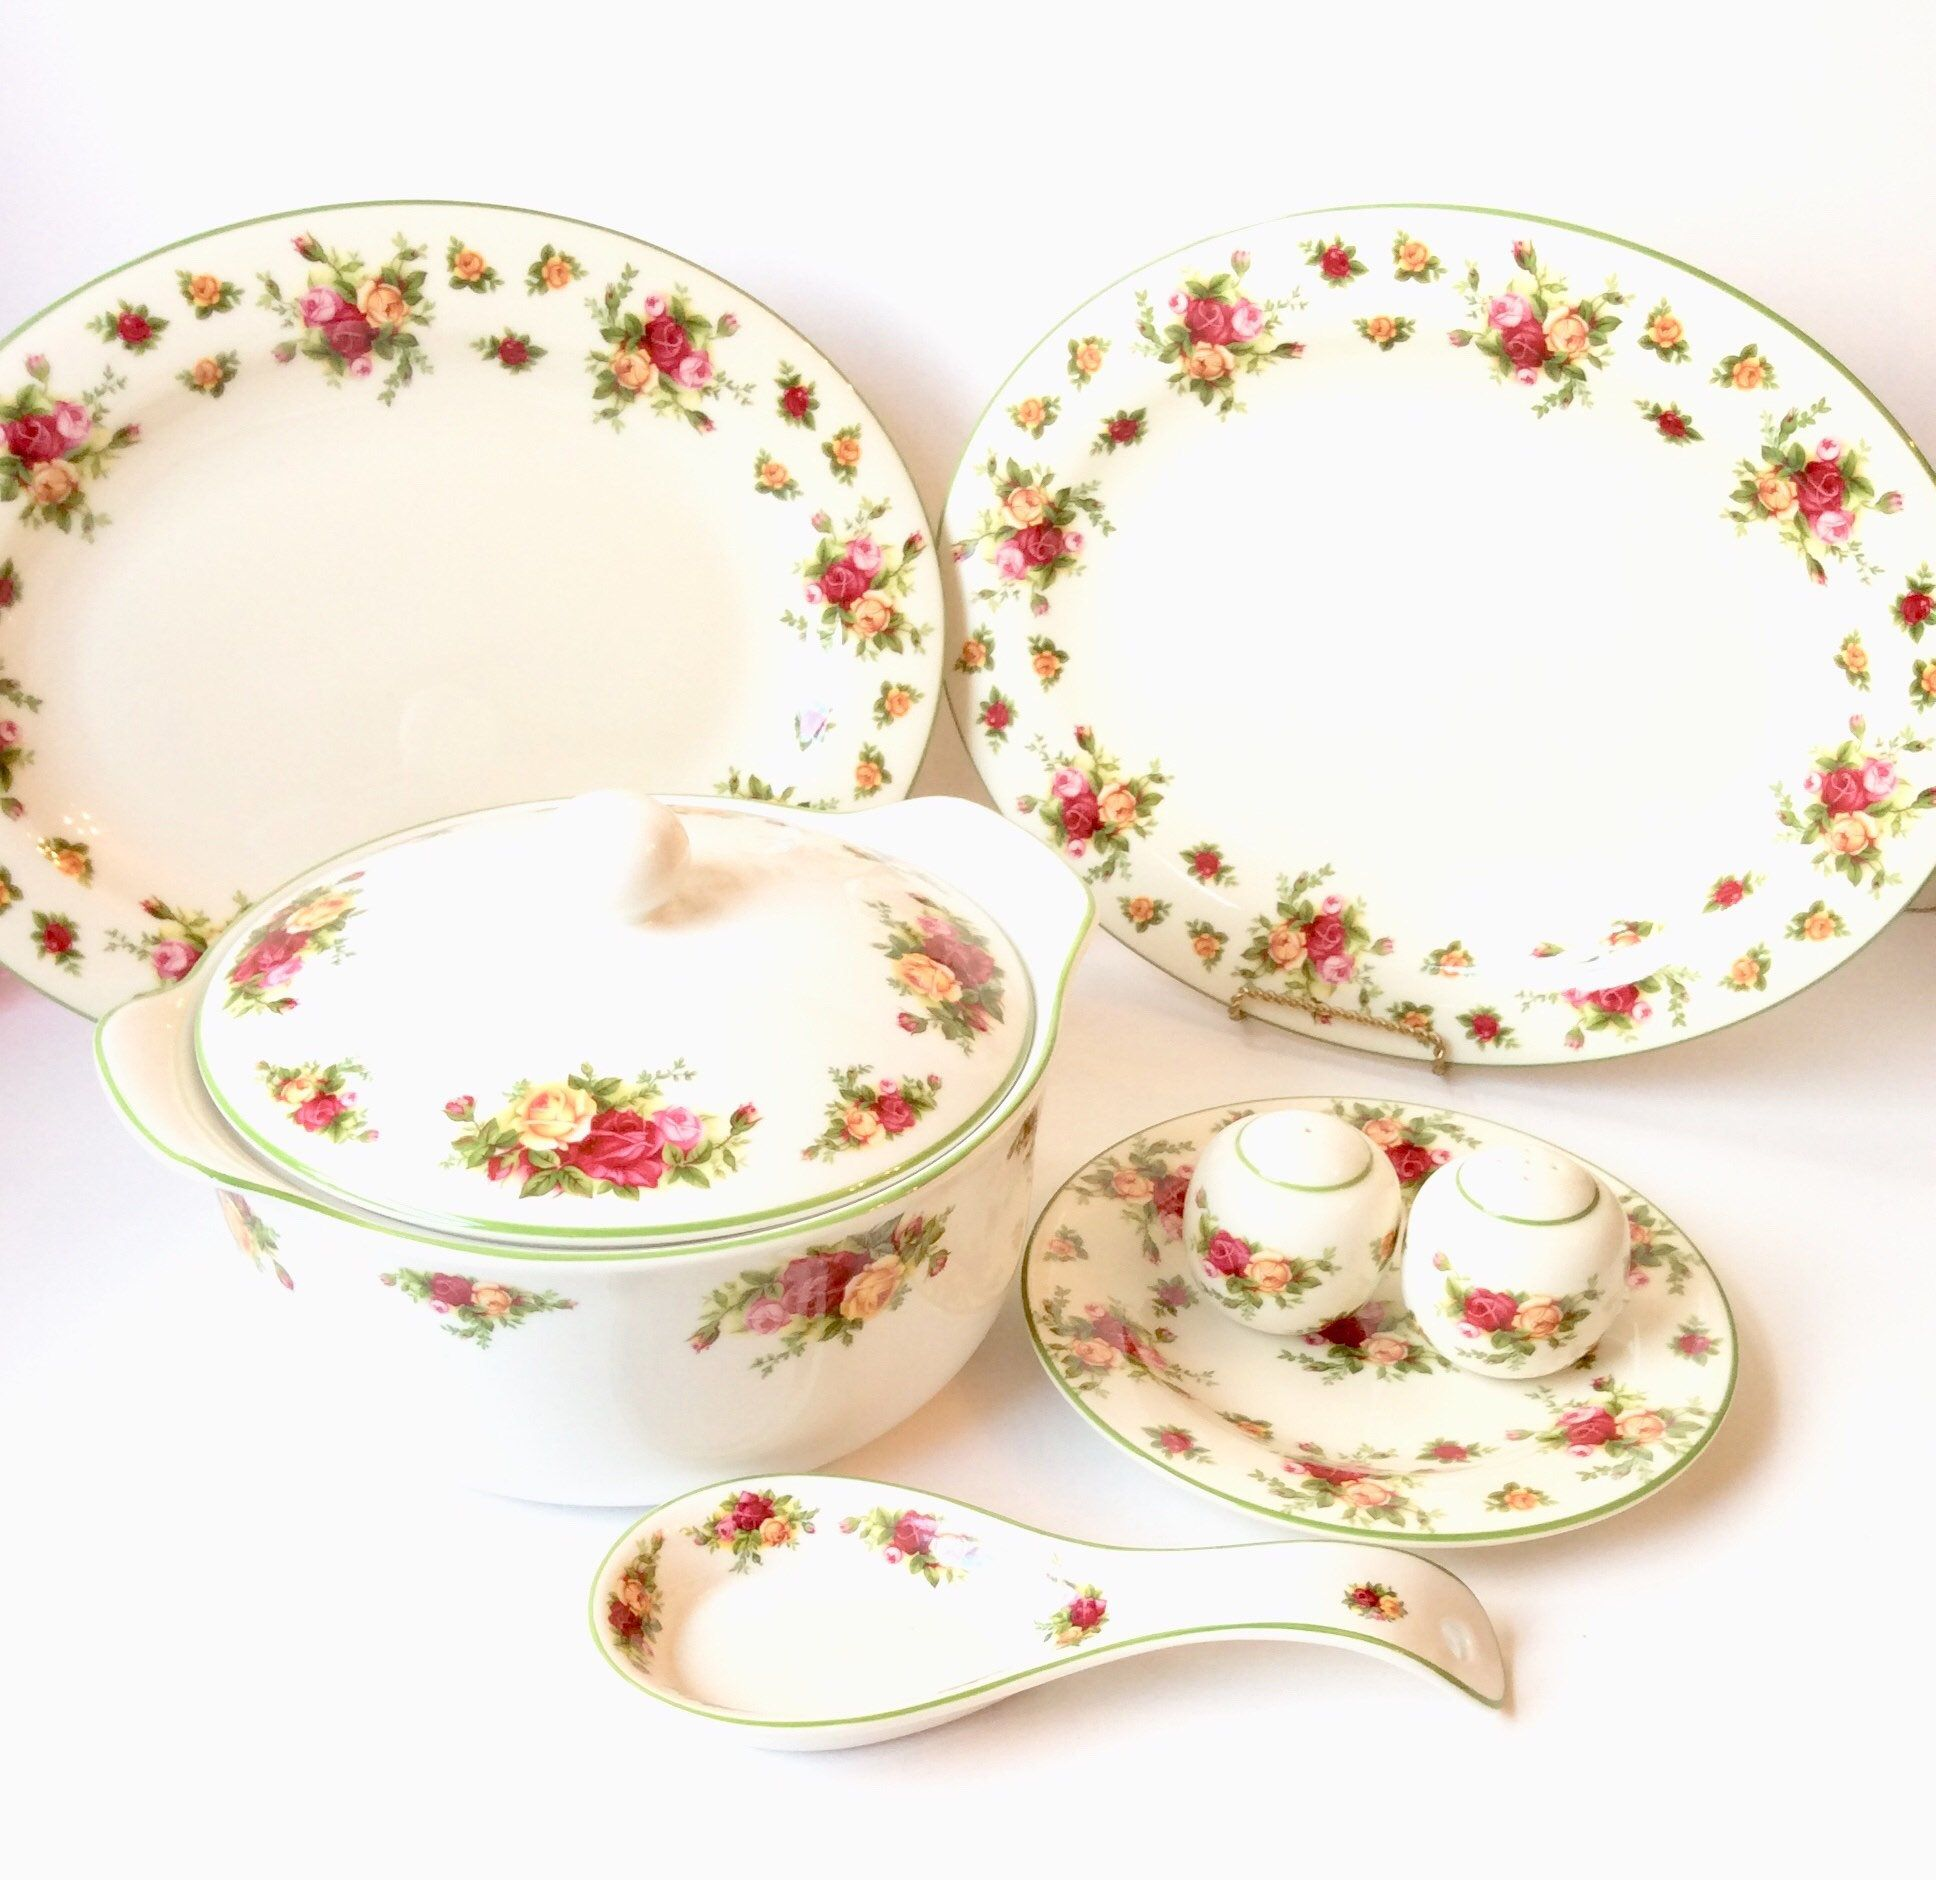 7pcs Royal Albert Old Country Roses Covered Casserole Bowl